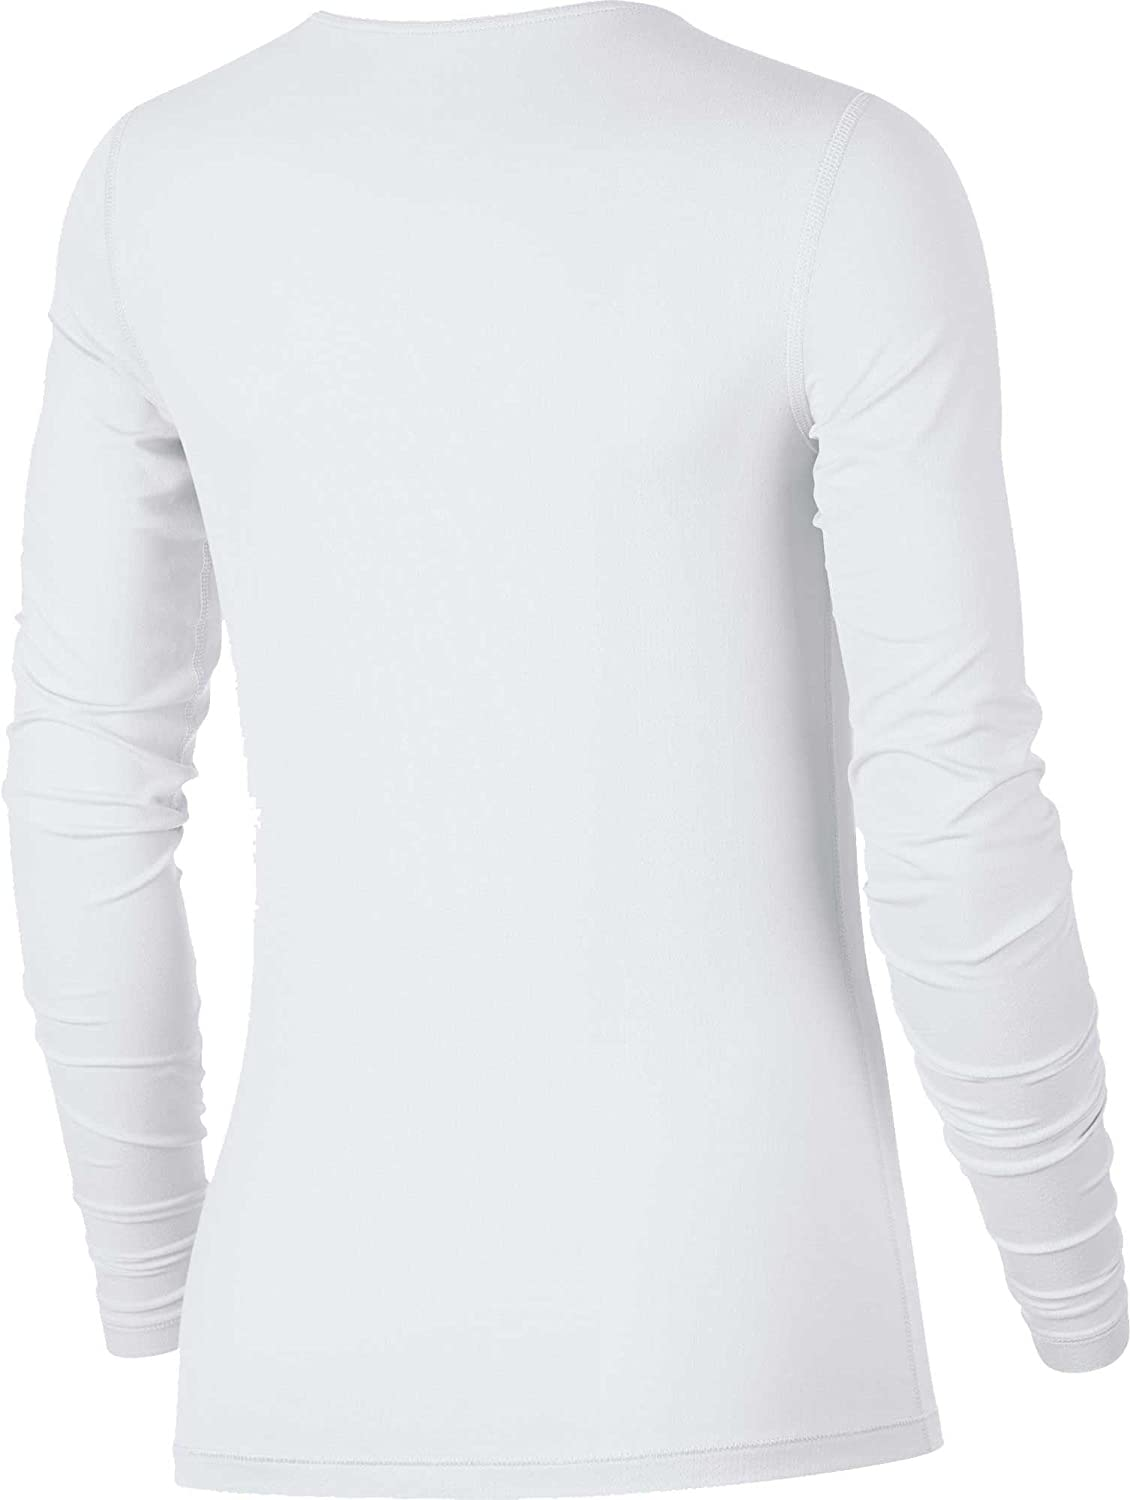 ea52a7f696d44 Amazon.com  NIKE Pro Women s Long Sleeve Training Top  Sports   Outdoors